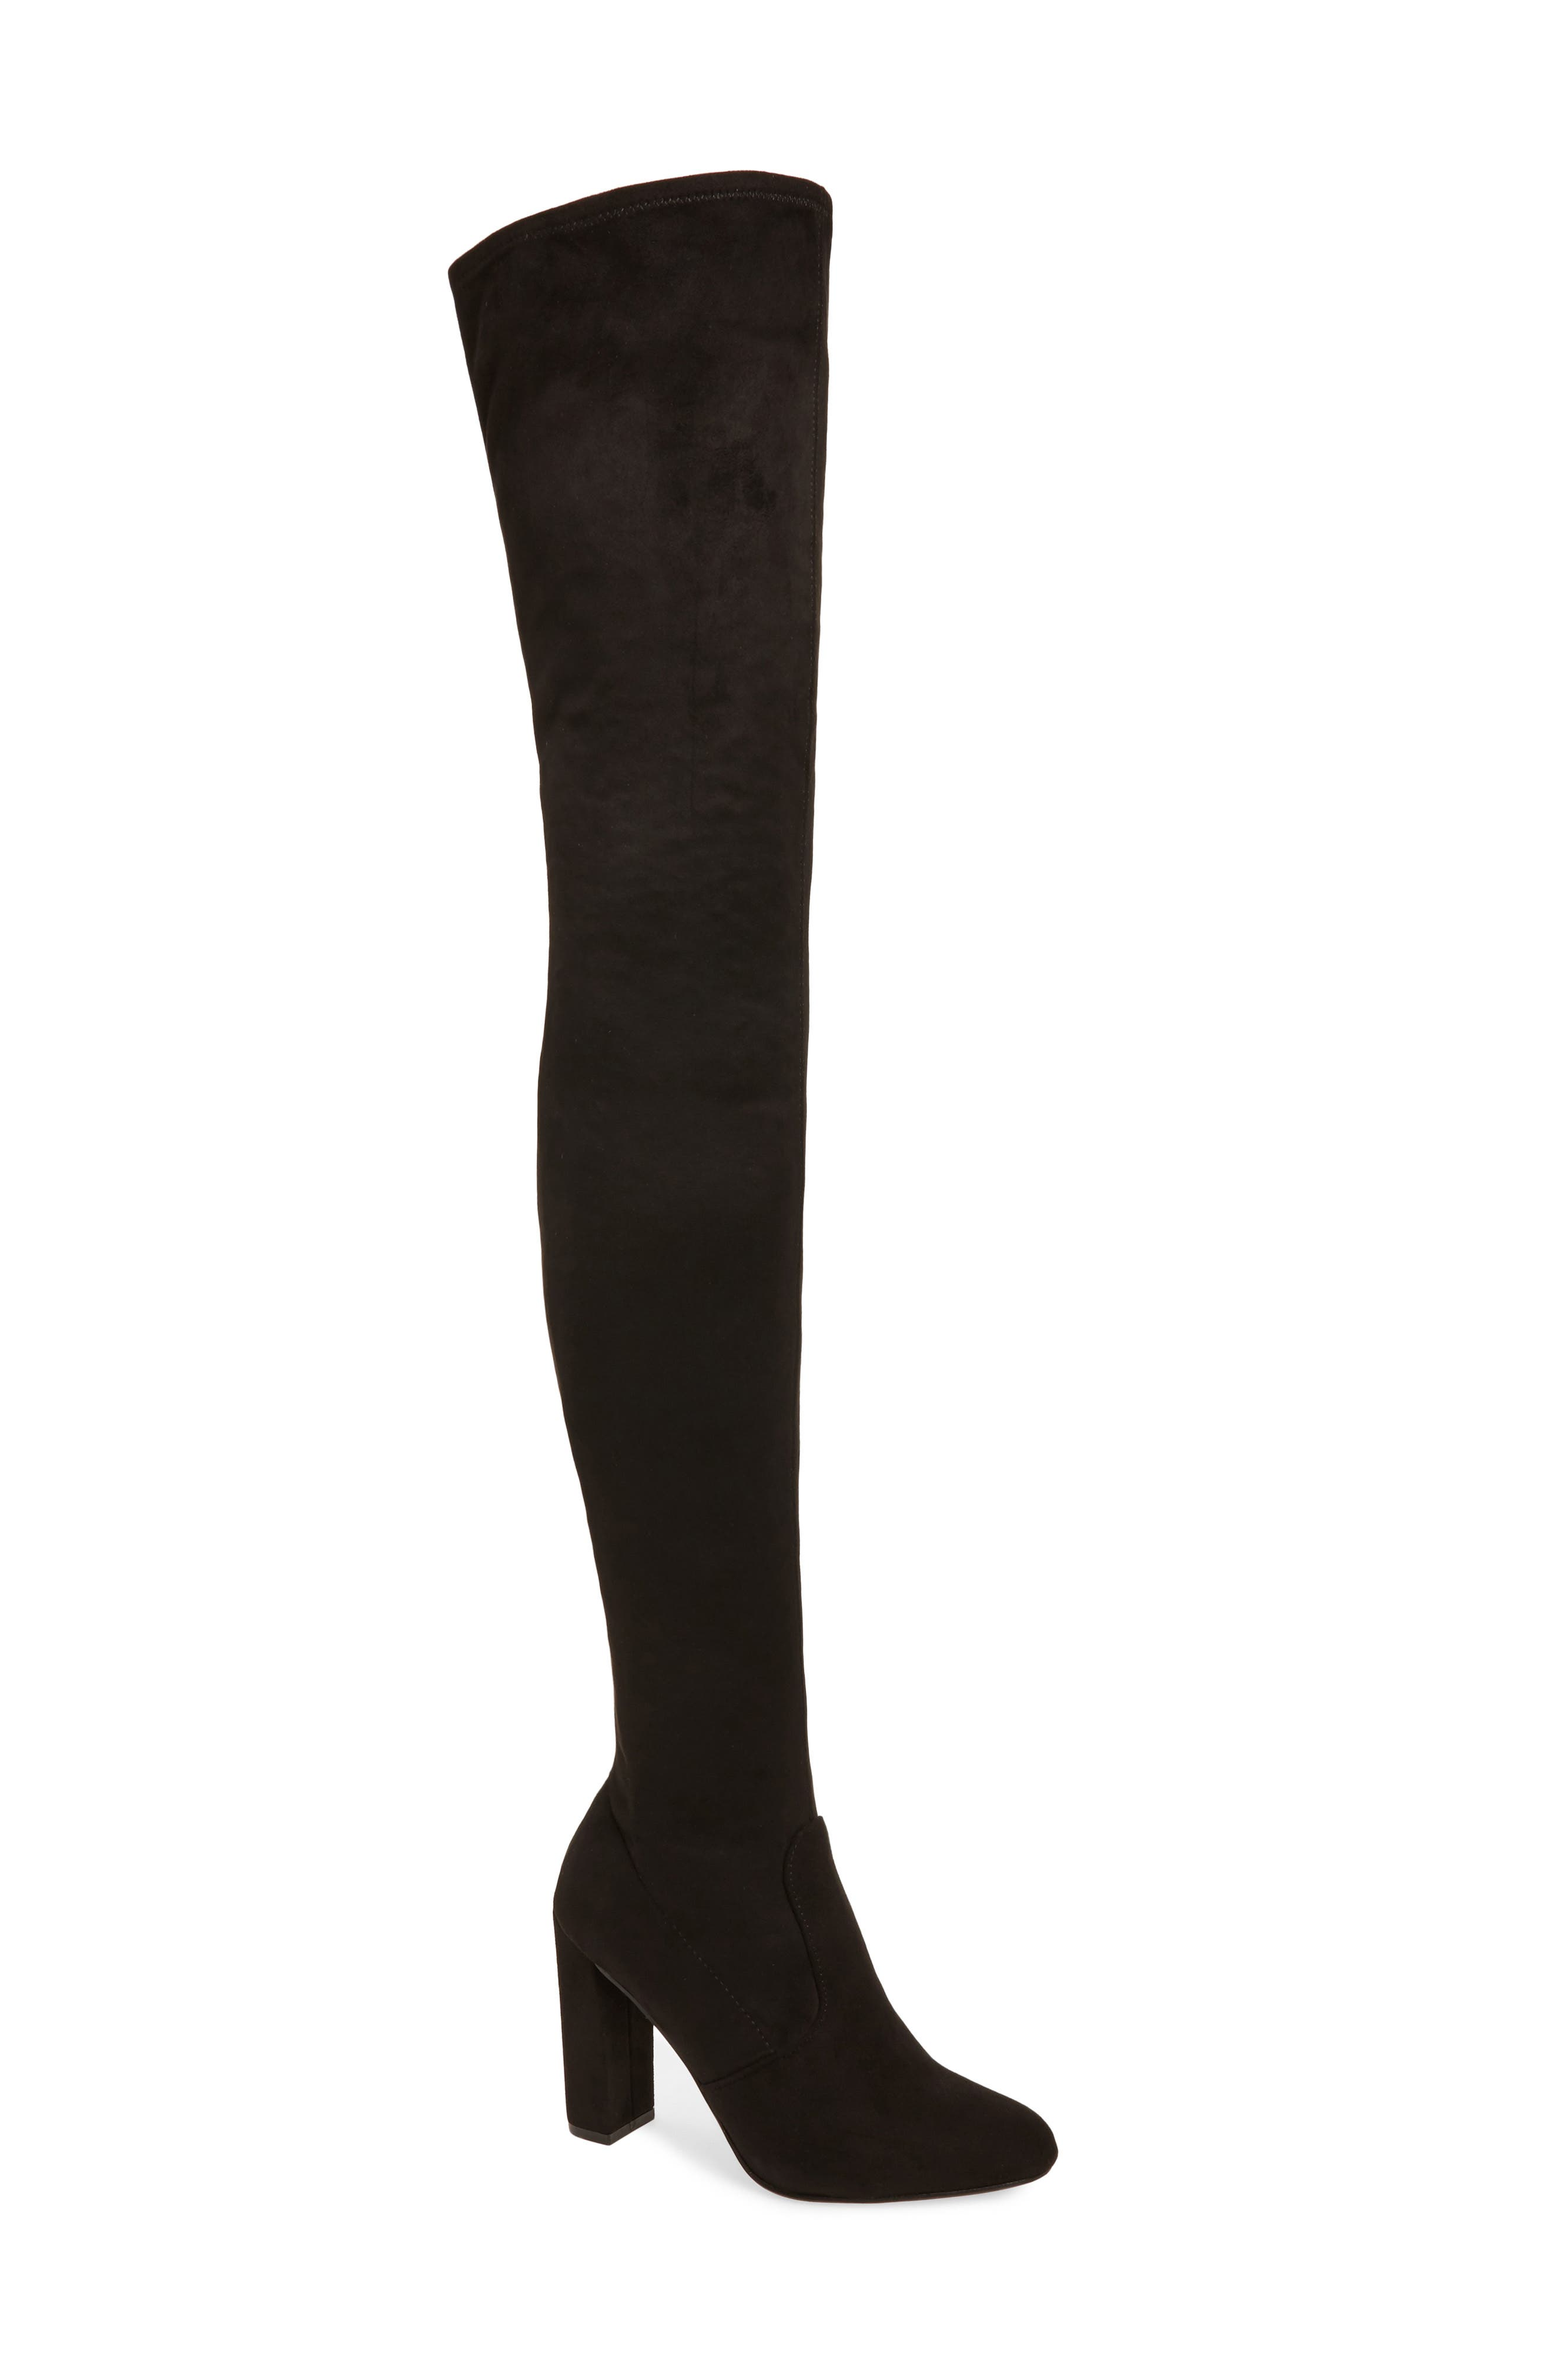 Alternate Image 1 Selected - Steve Madden Ezra Thigh High Boot (Women)